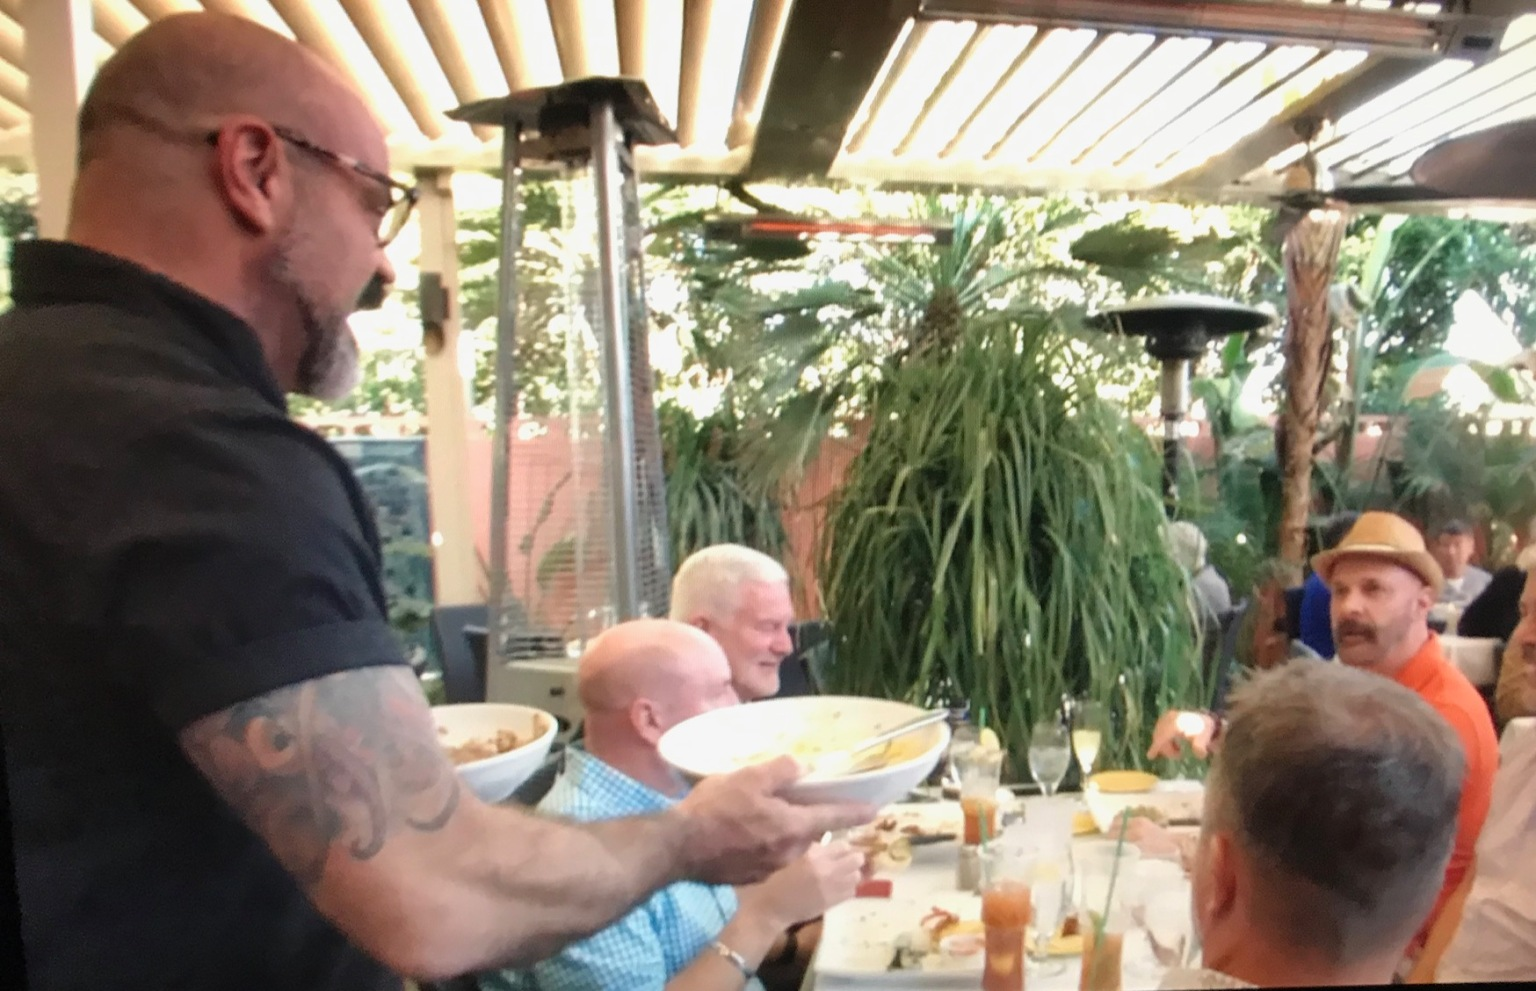 Palm Springs Restaurant Implementing a Surcharge to Give Employees Healthcare Insurance